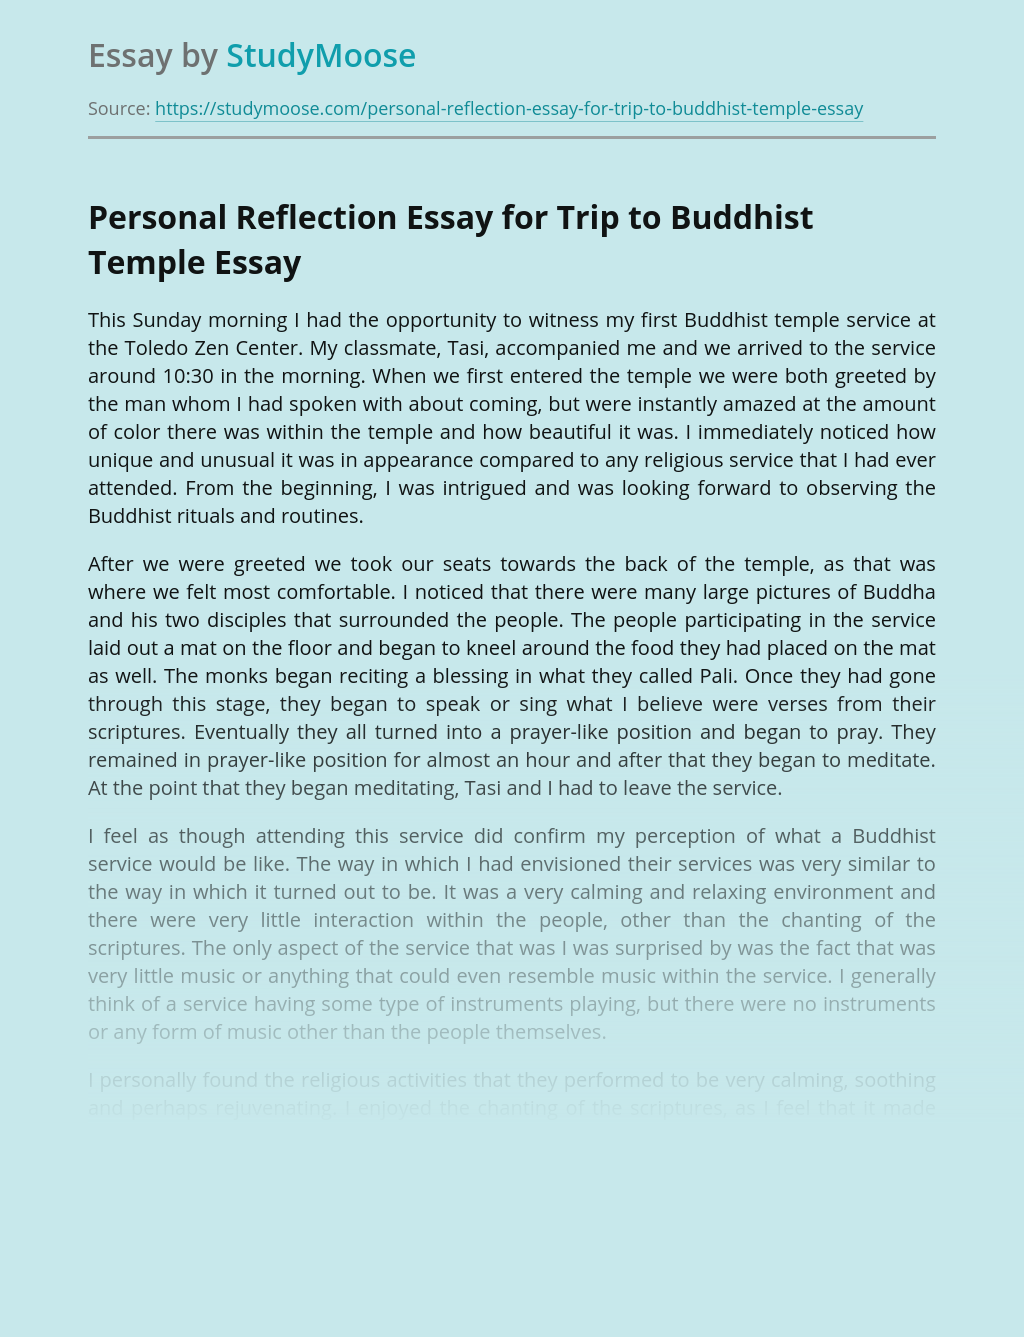 Personal Reflection Essay for Trip to Buddhist Temple